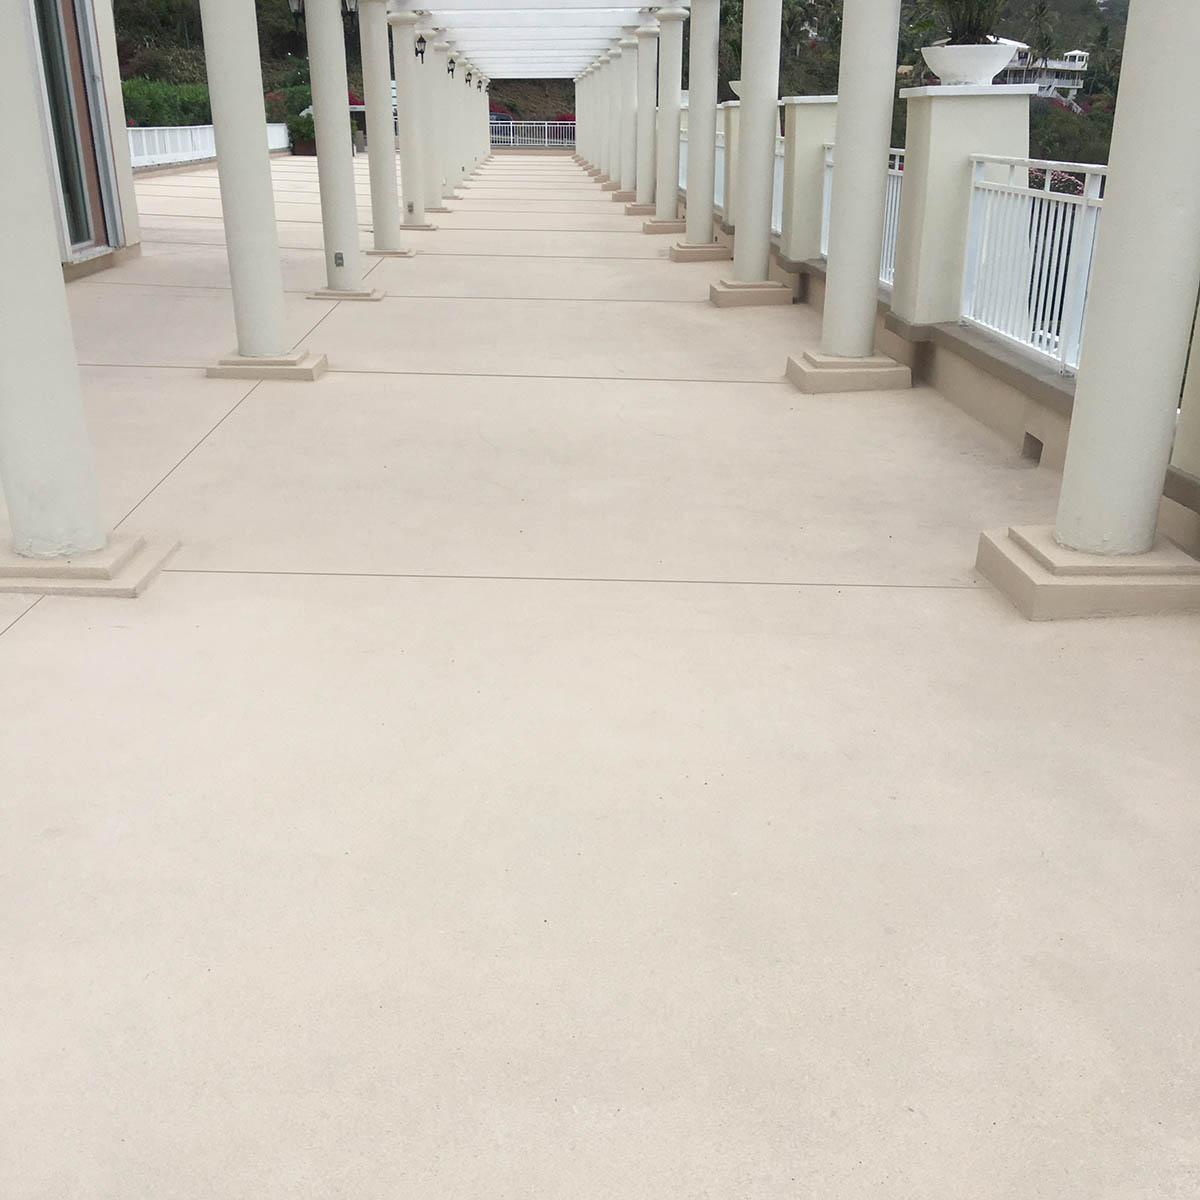 Marriots Frenchmans Cove - new X-Bond Seamless Stone surface